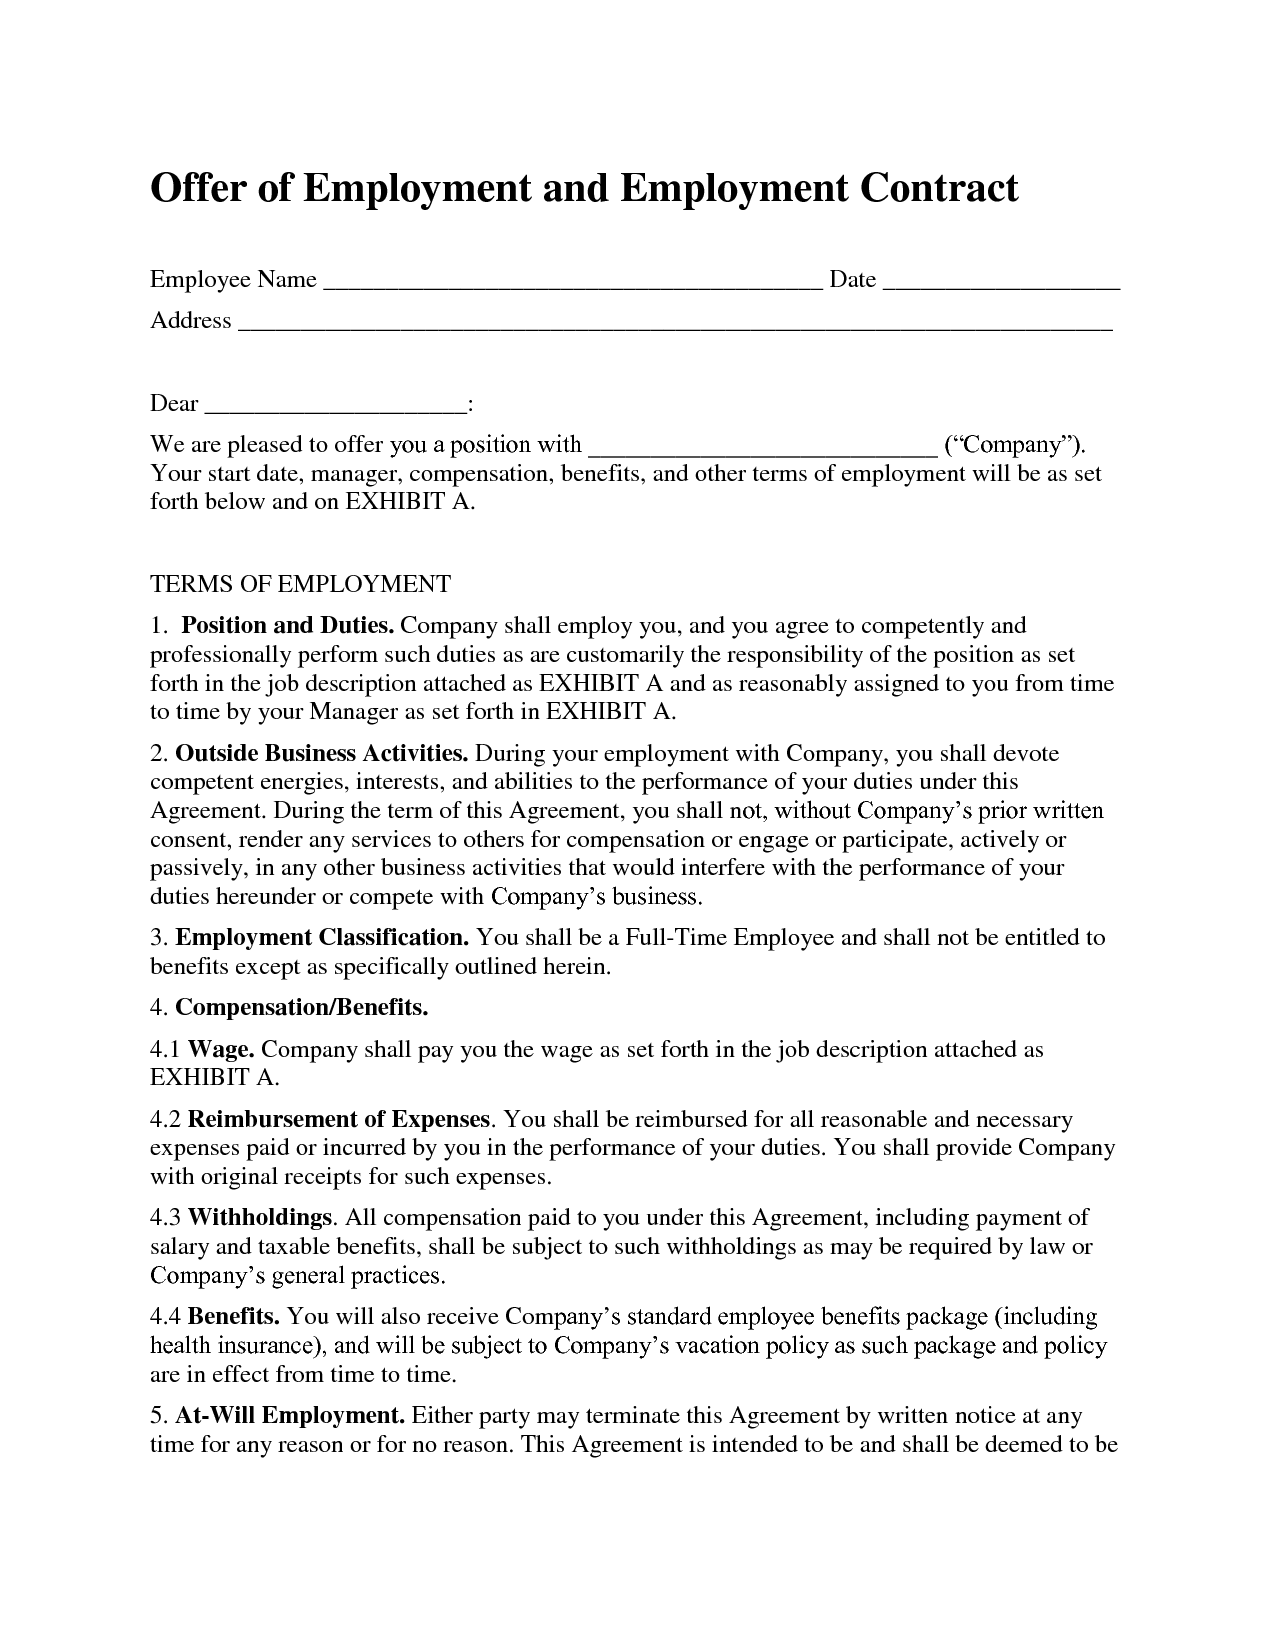 Printable Sample Employment Contract Sample Form | Online Attorney ...